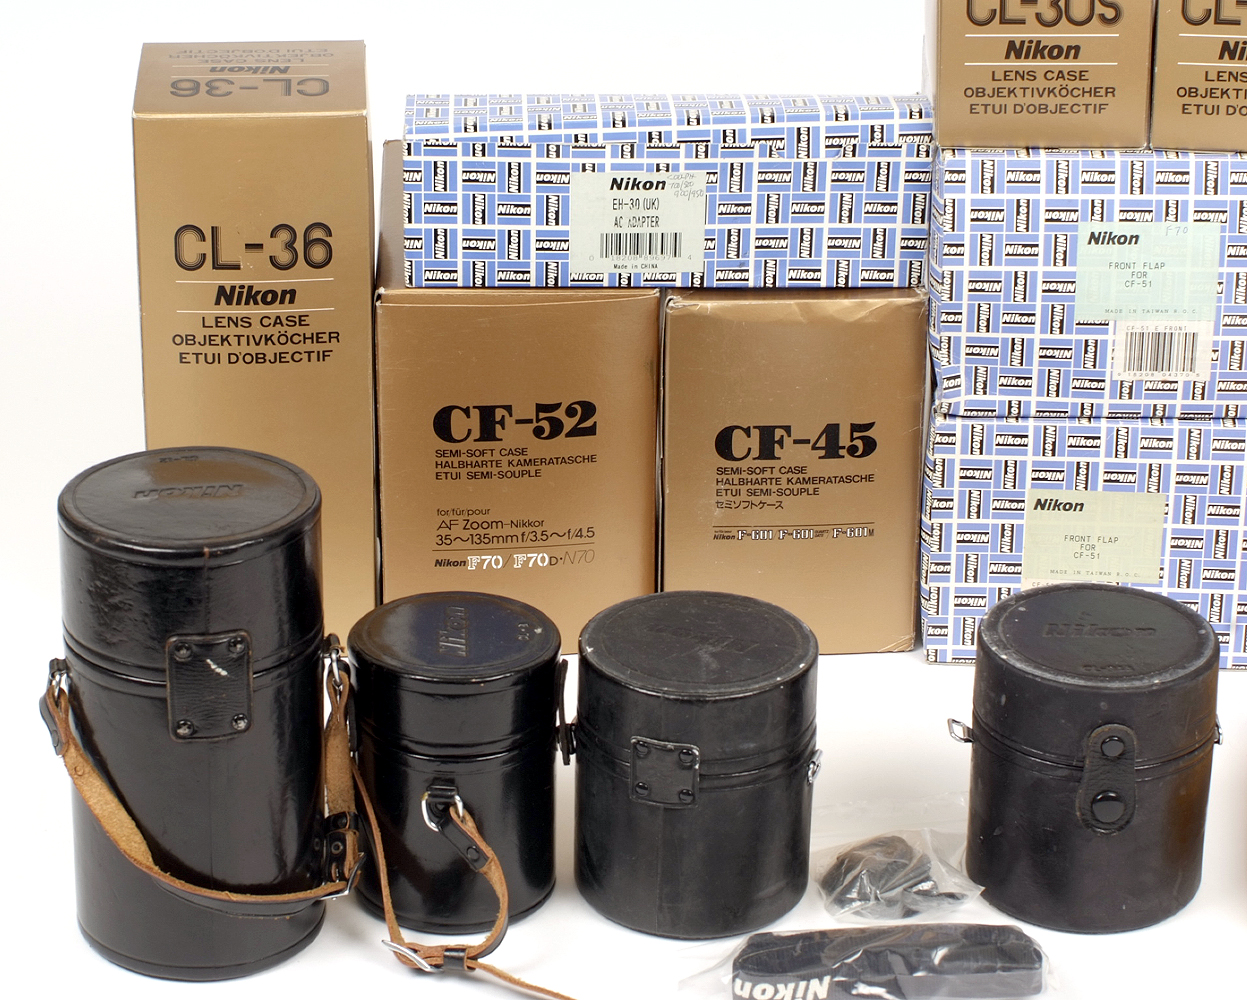 Lot 41A - Large Quantity of Nikon Lens & Camera Cases. Several new and in makers boxes.